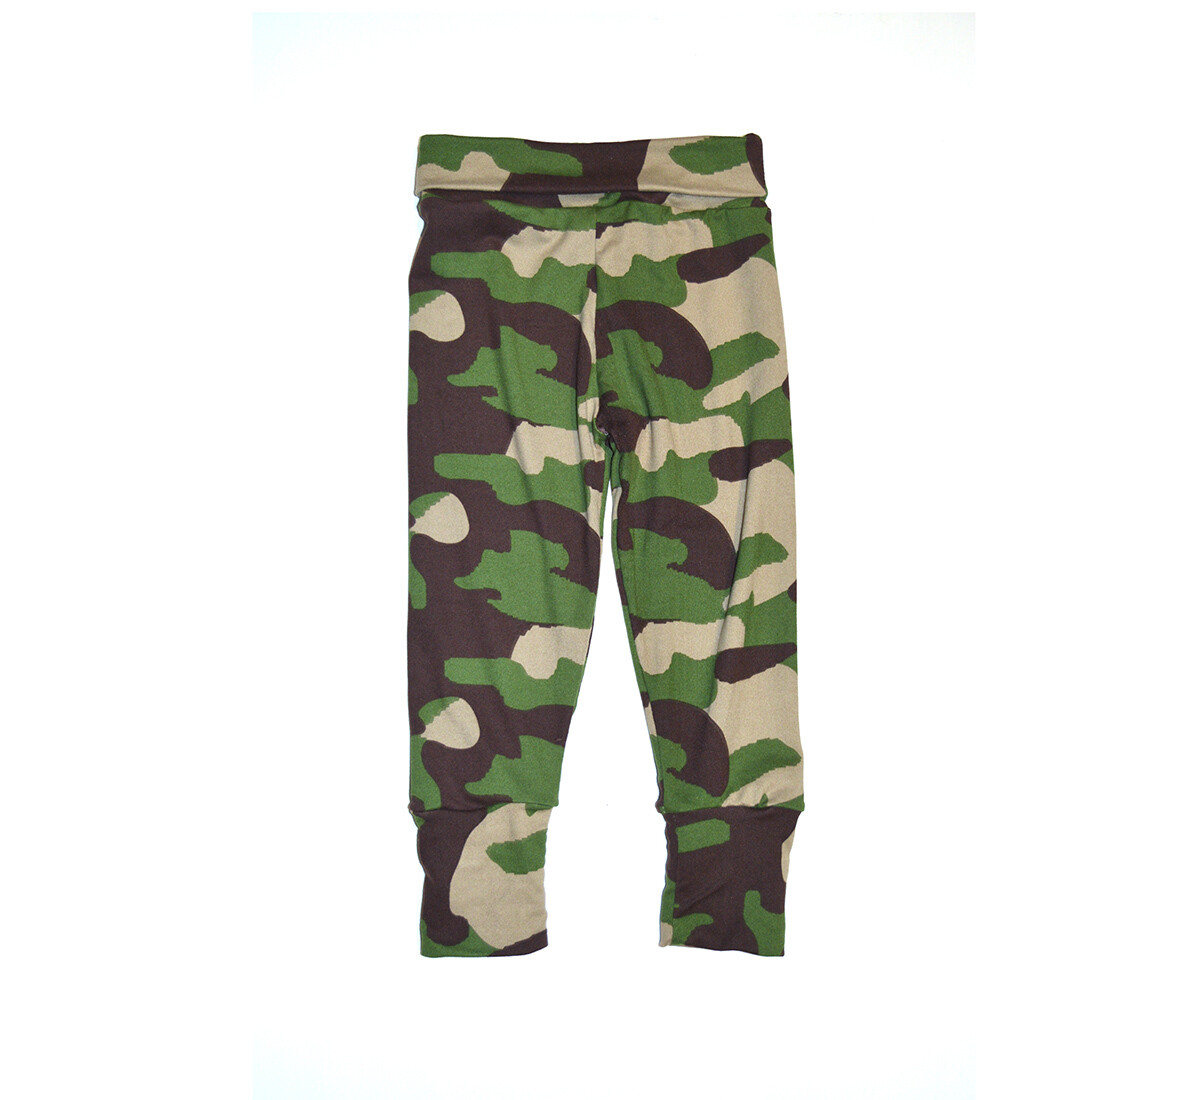 Little Sprout™ One-Size Grow with Me Pants in Camo